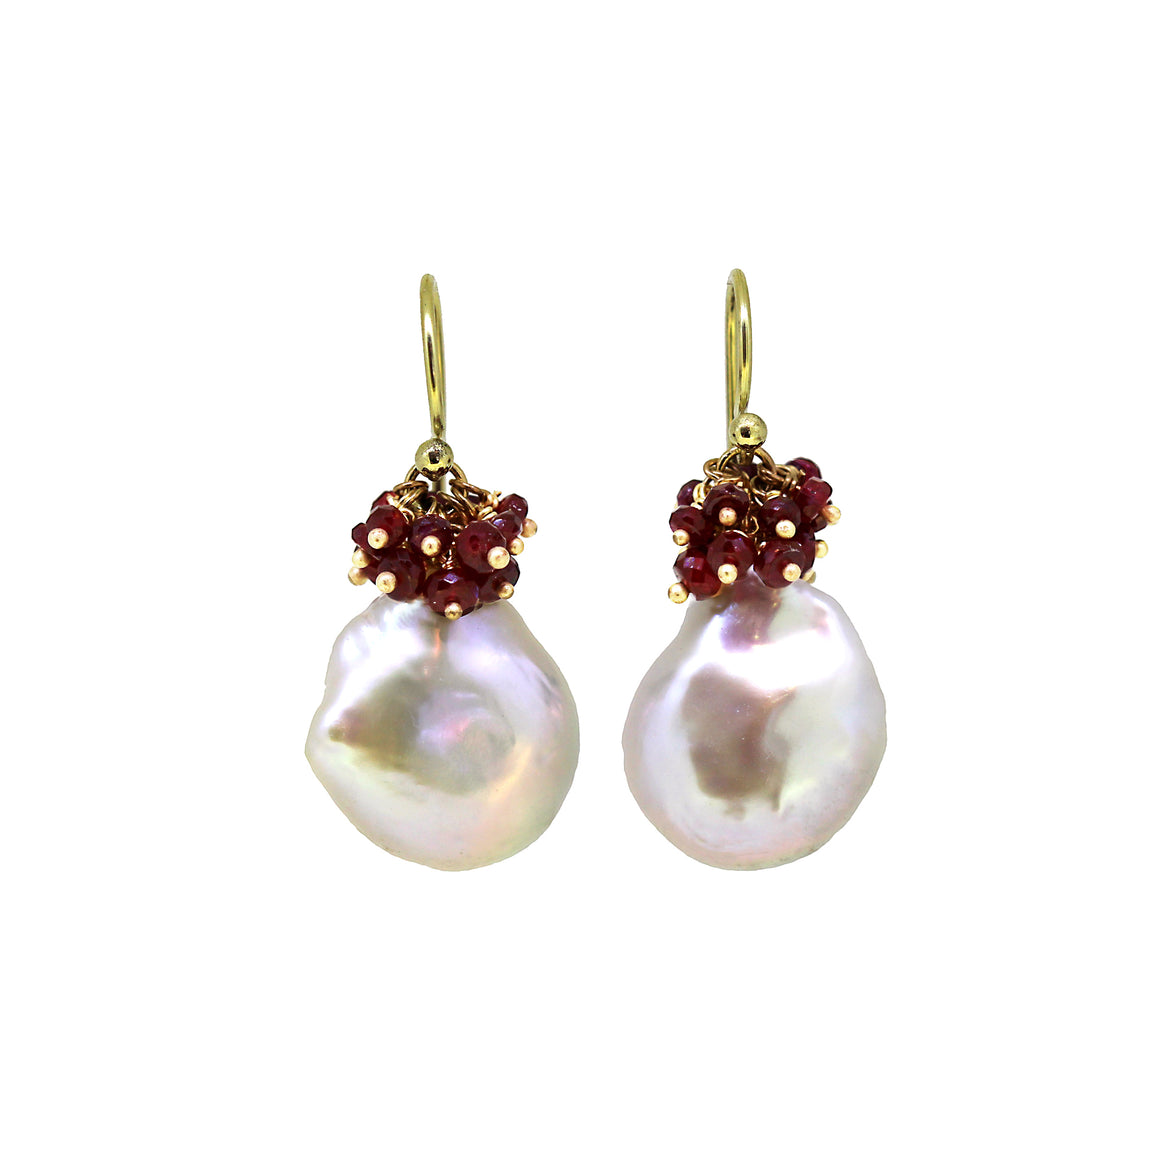 Asymmetrical Baroque Pearl and Ruby Hat Earrings